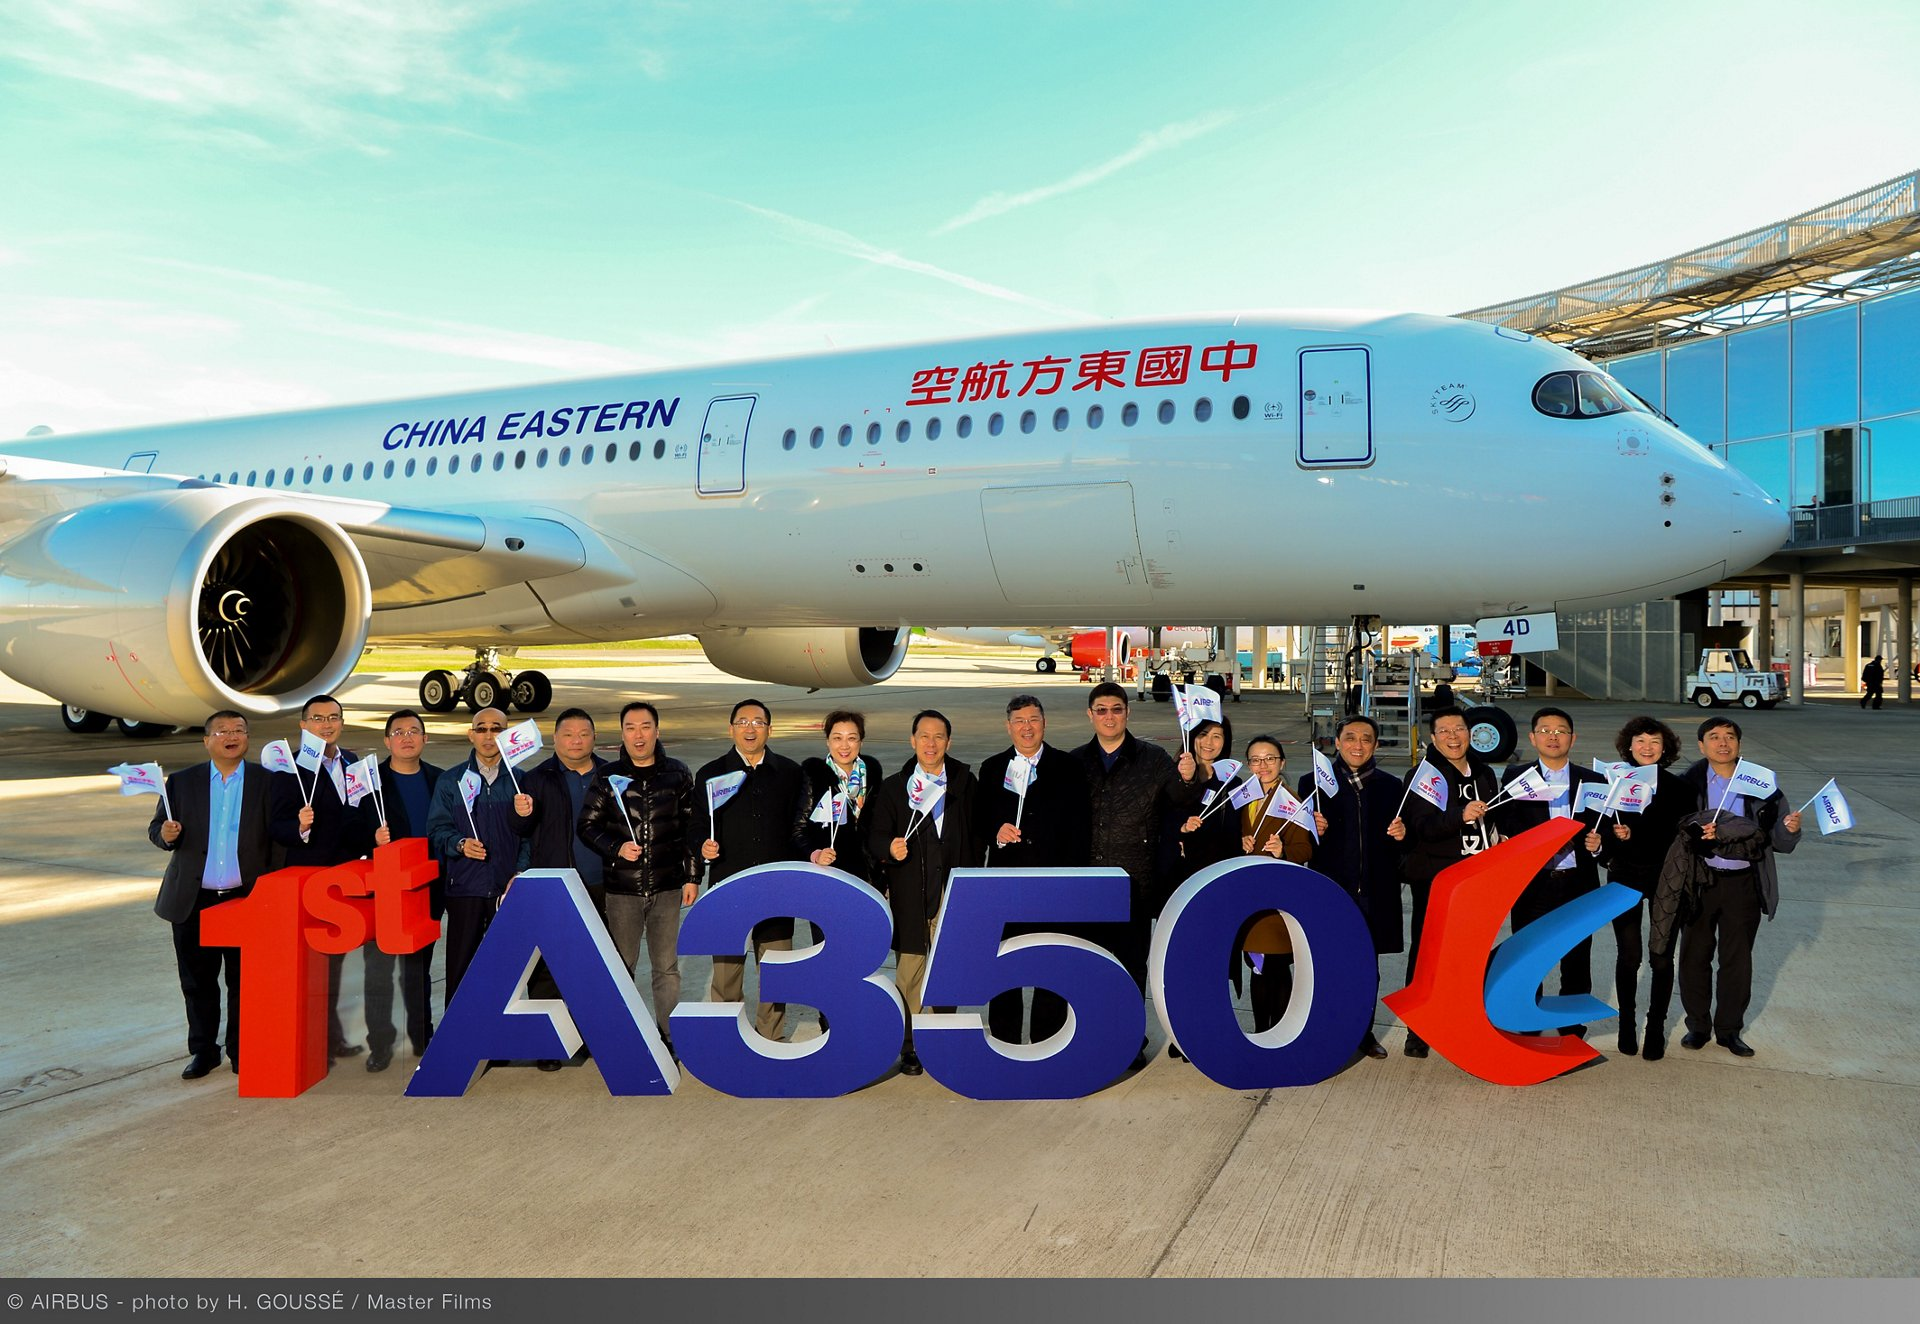 Shanghai-based China Eastern Airlines took delivery of its first A350-900 – which features a modern and comfortable four-class cabin layout of 288 seats – during a ceremony in Toulouse, France